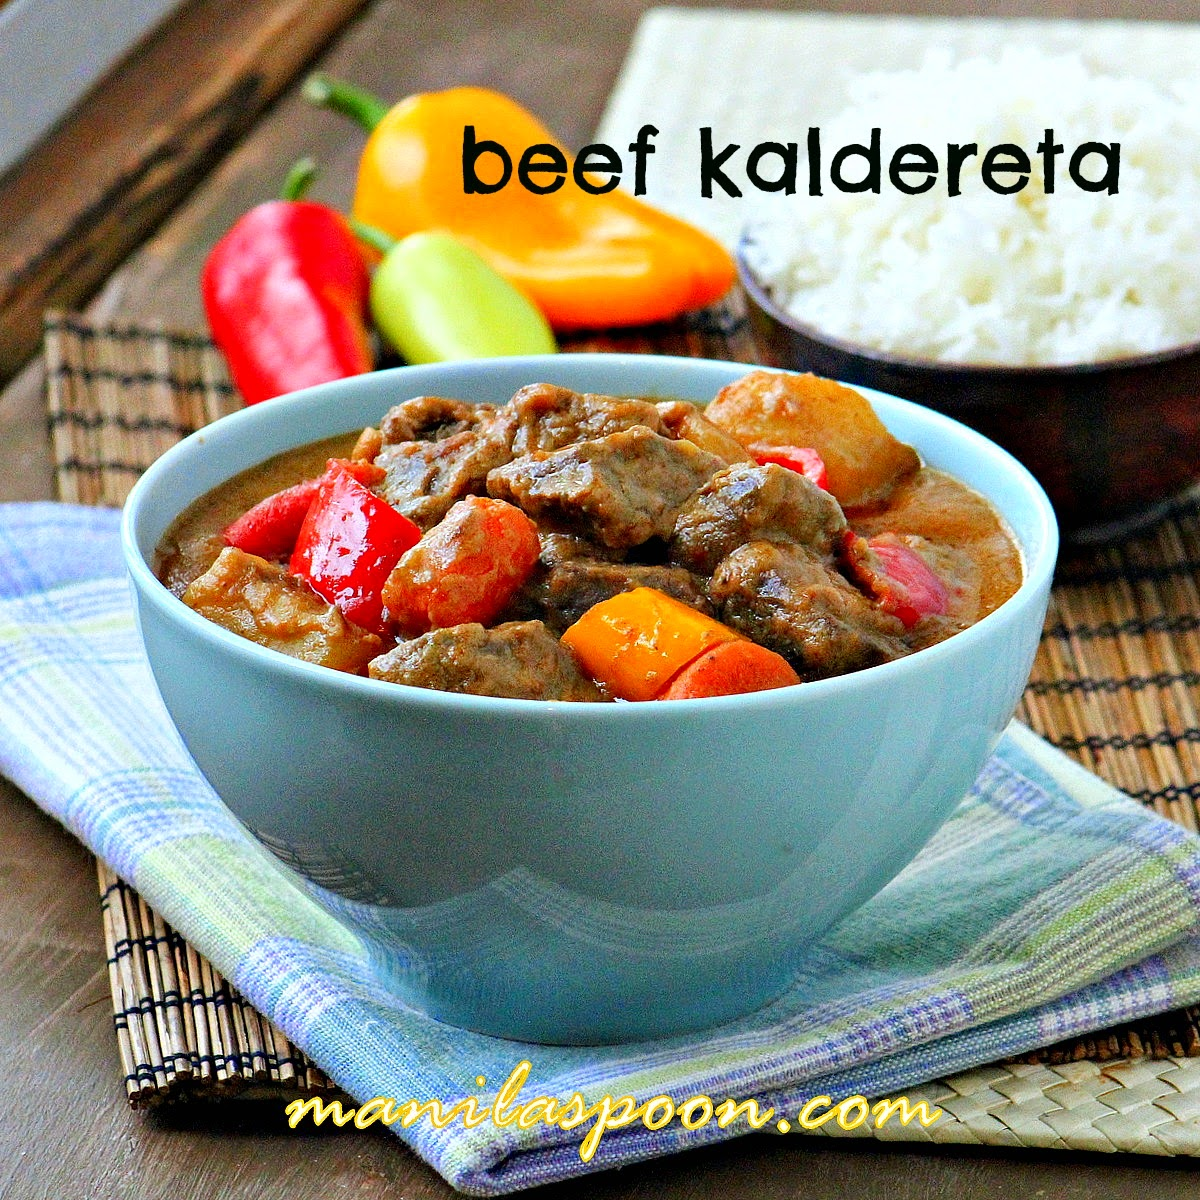 Creamy, nutty, spicy and delicious! This tasty beef stew is comfort food at its best - BEEF KALDERETA #caldereta #kaldereta